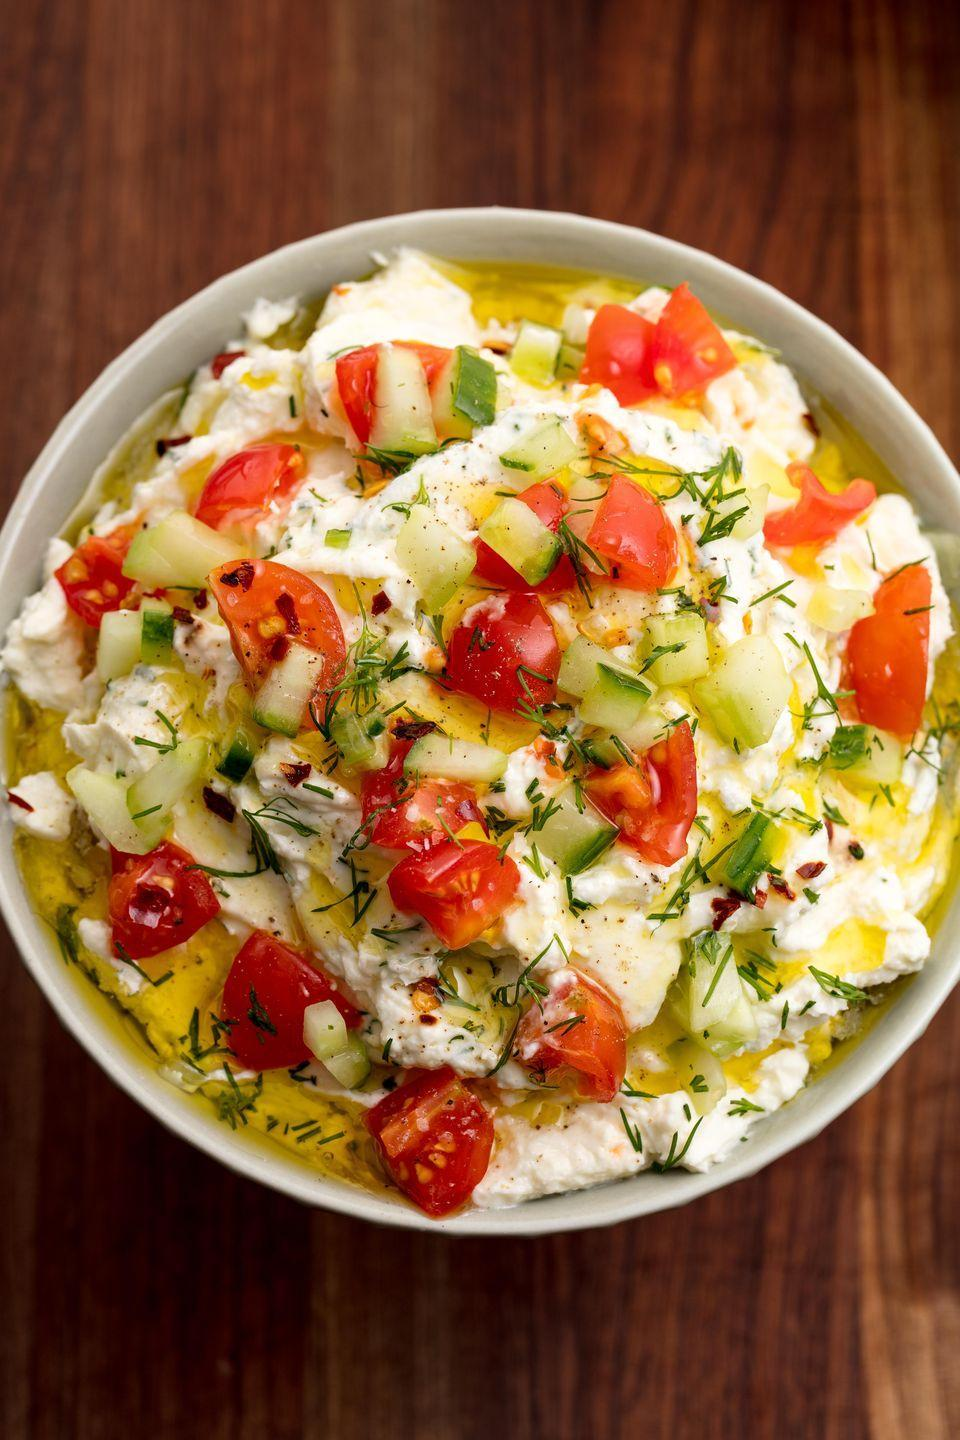 "<p>Whipped feta > hummus.</p><p>Get the recipe from <a href=""https://www.delish.com/cooking/recipe-ideas/recipes/a50968/greek-feta-dip-recipe/"" rel=""nofollow noopener"" target=""_blank"" data-ylk=""slk:Delish"" class=""link rapid-noclick-resp"">Delish</a>.</p>"